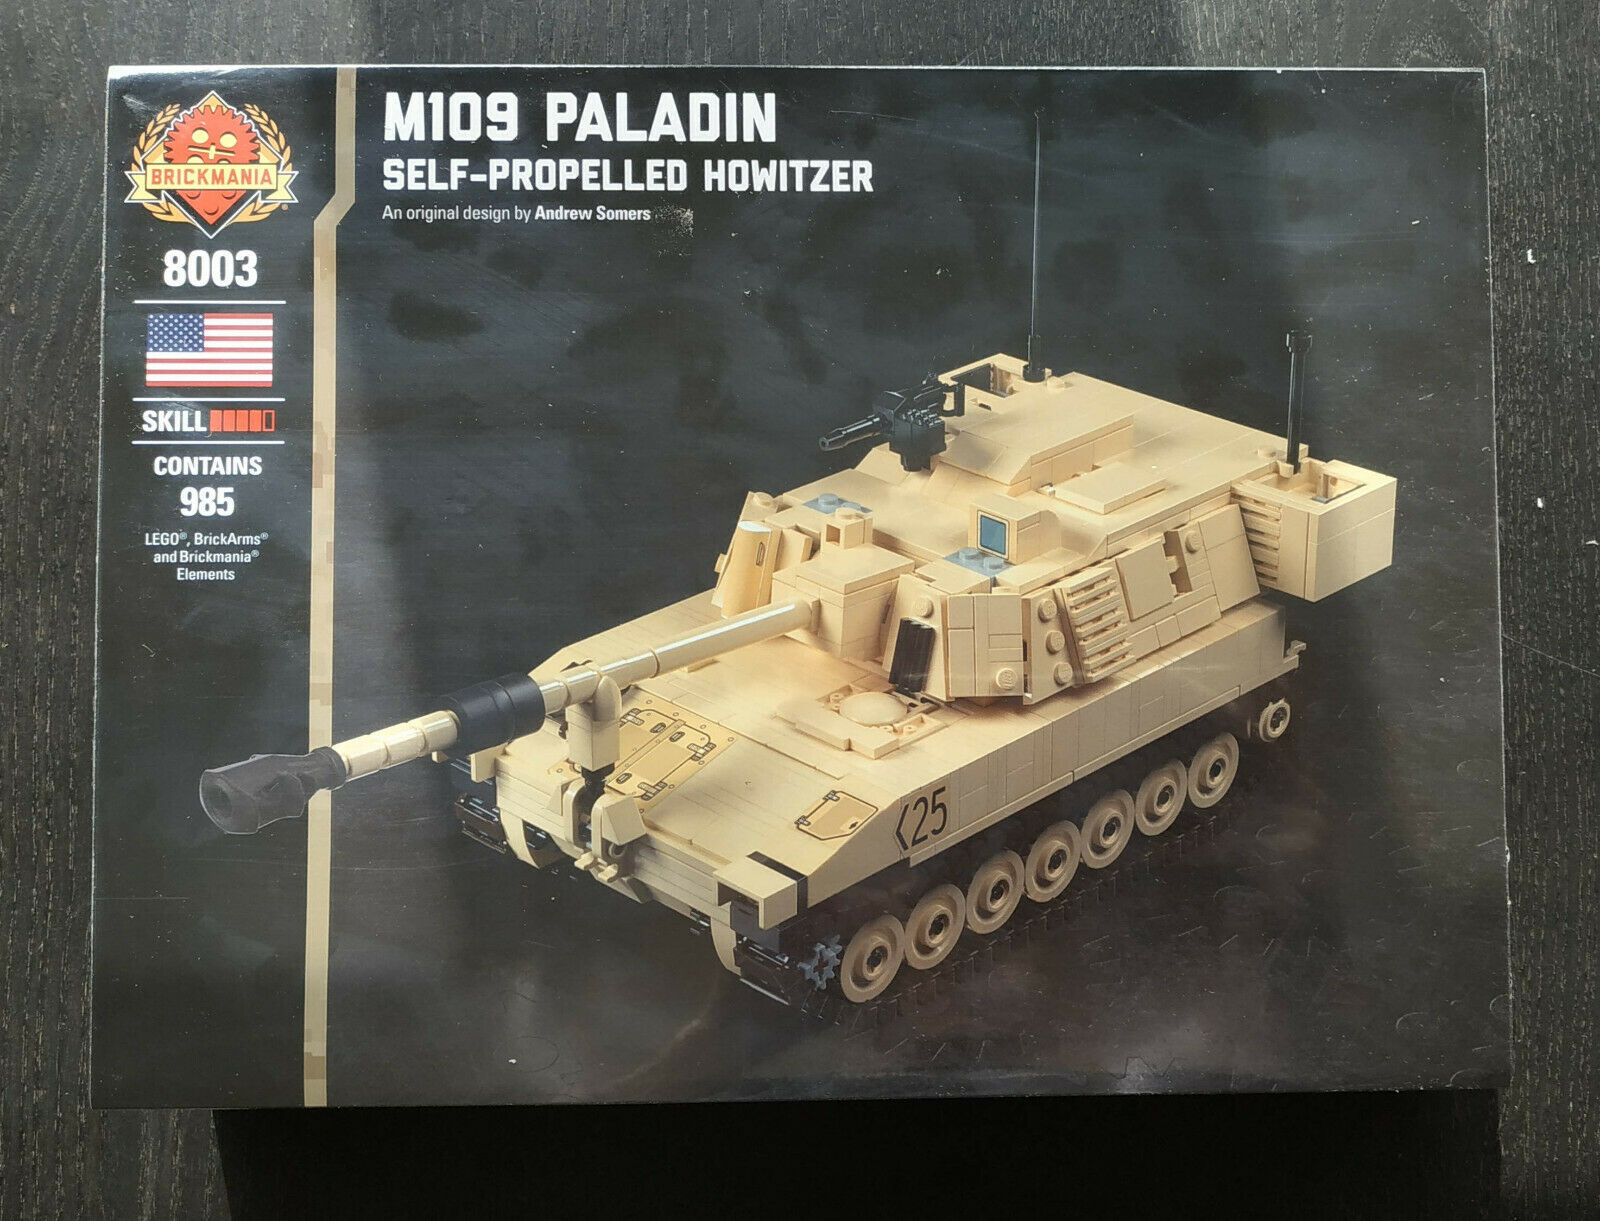 Brickmania M109 Paladin- Self-Propelled Howitzer-brand Howitzer-brand Howitzer-brand new fff